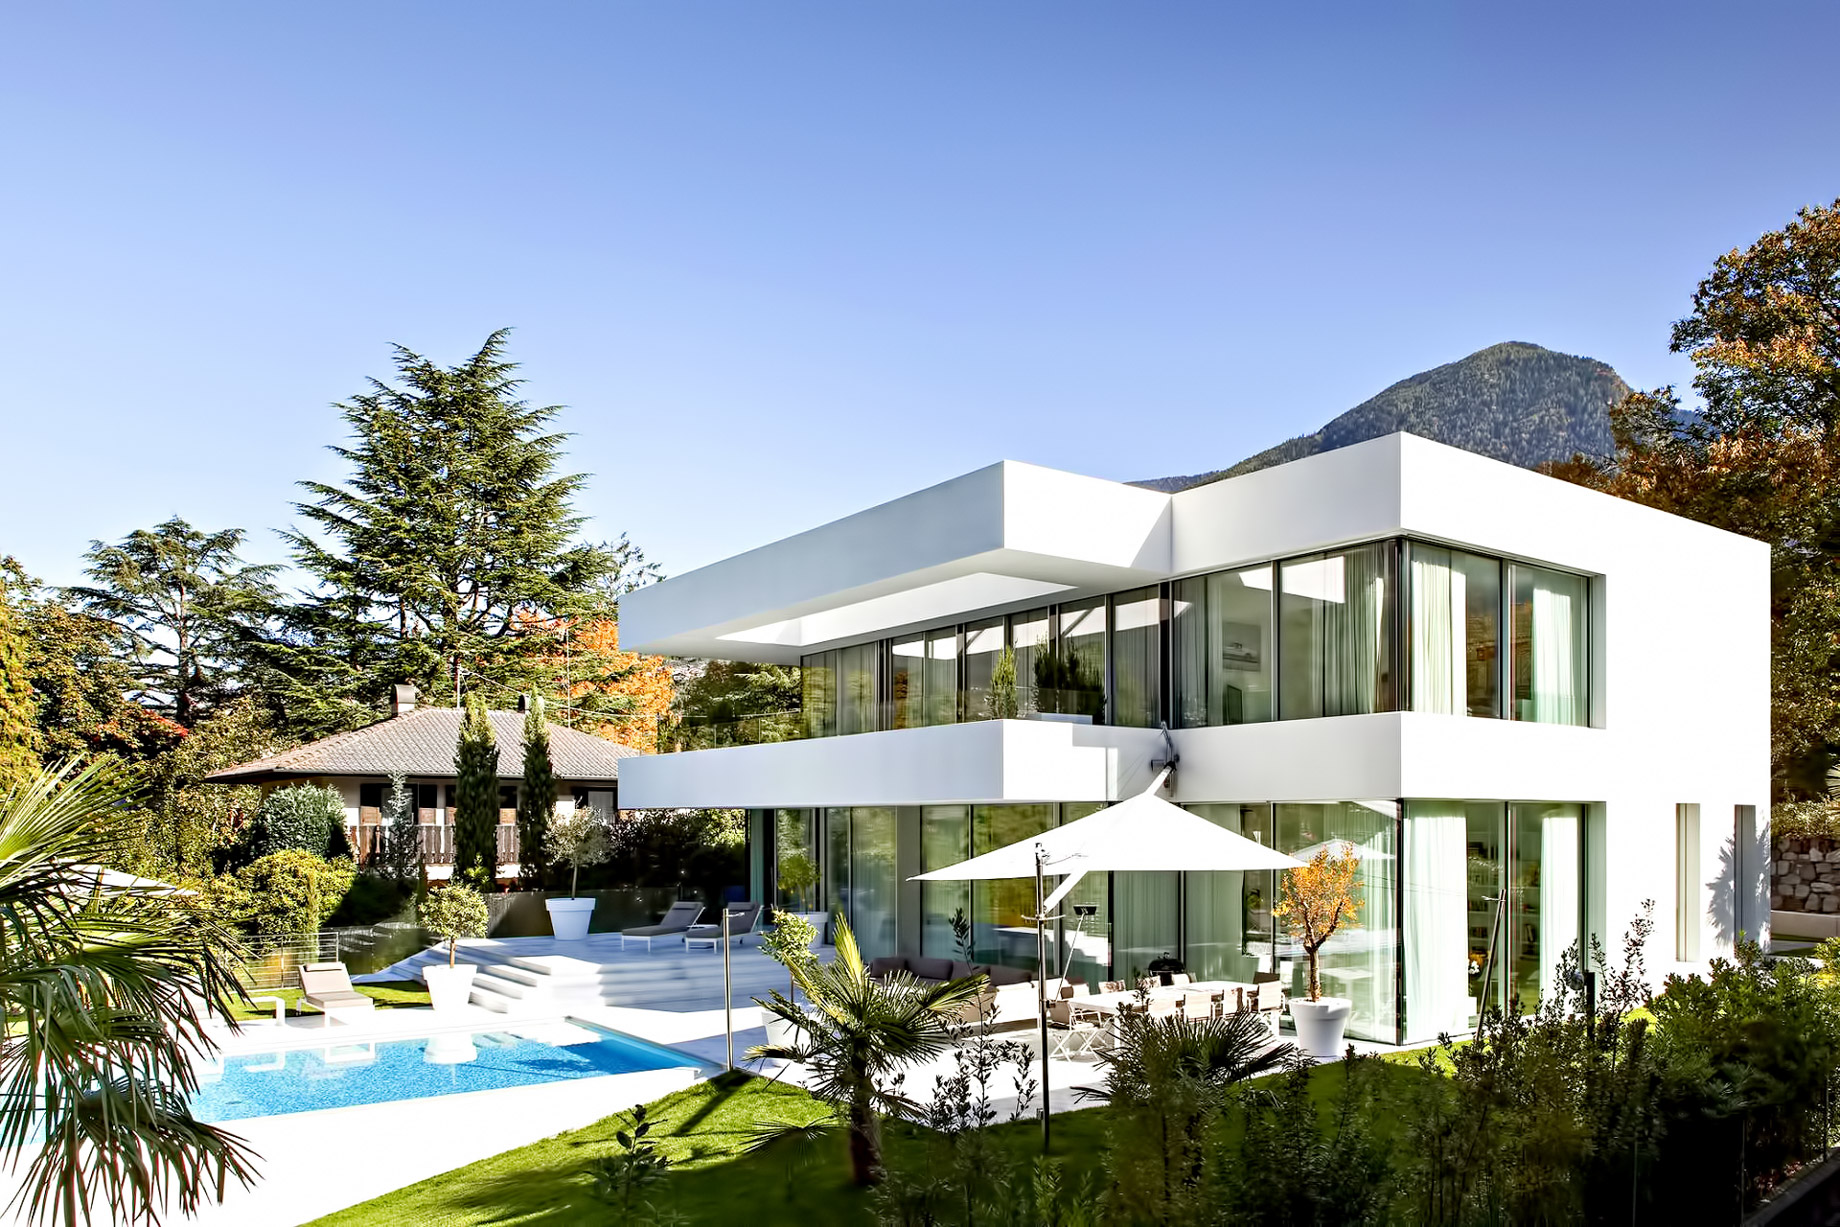 House M Luxury Residence – Merano, South Tyrol, Italy